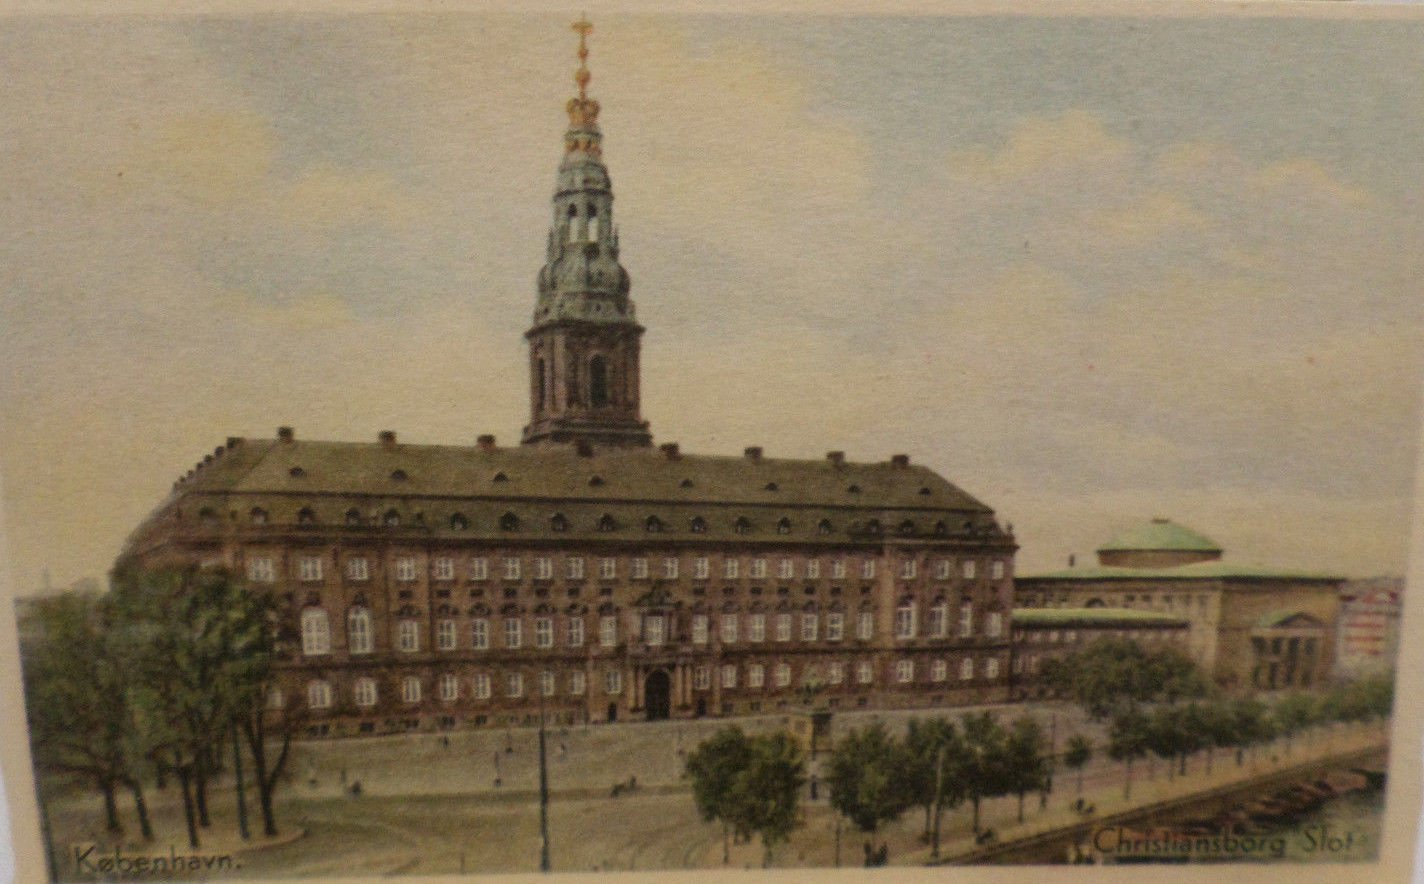 Vintage Postcards Denmark Travel Souvenir